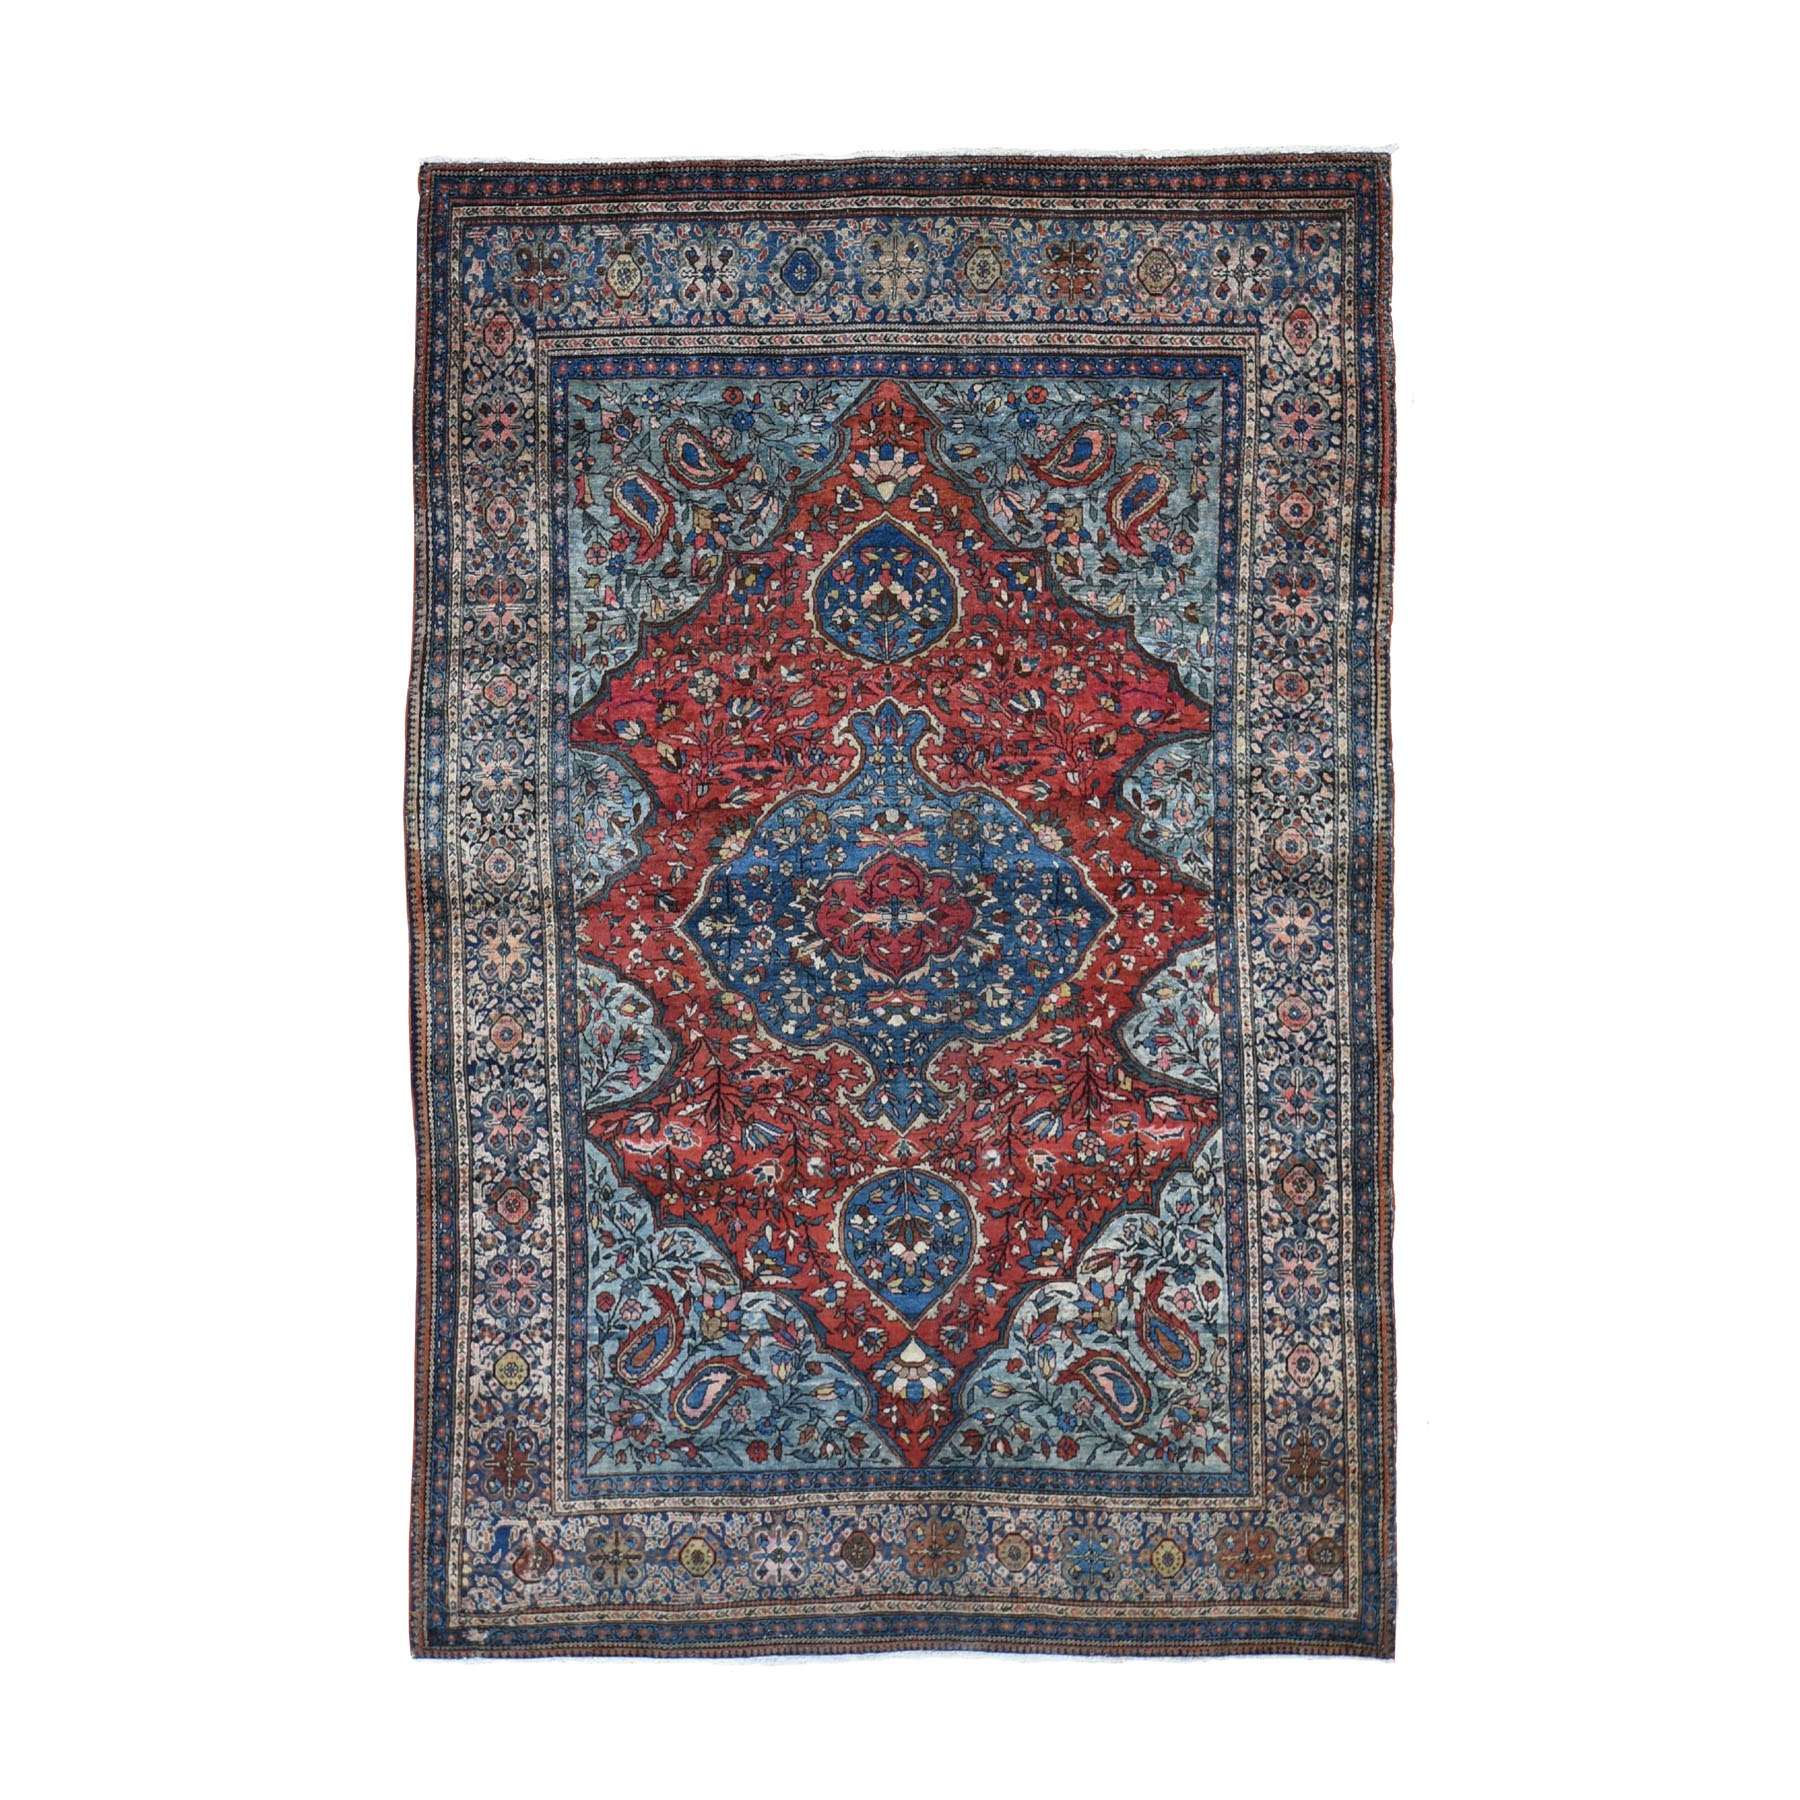 "4'2""x6'6"" Red Antique  Persian Sarouk Fereghan Good Condition Soft Hand Knotted Fine Oriental Rug"